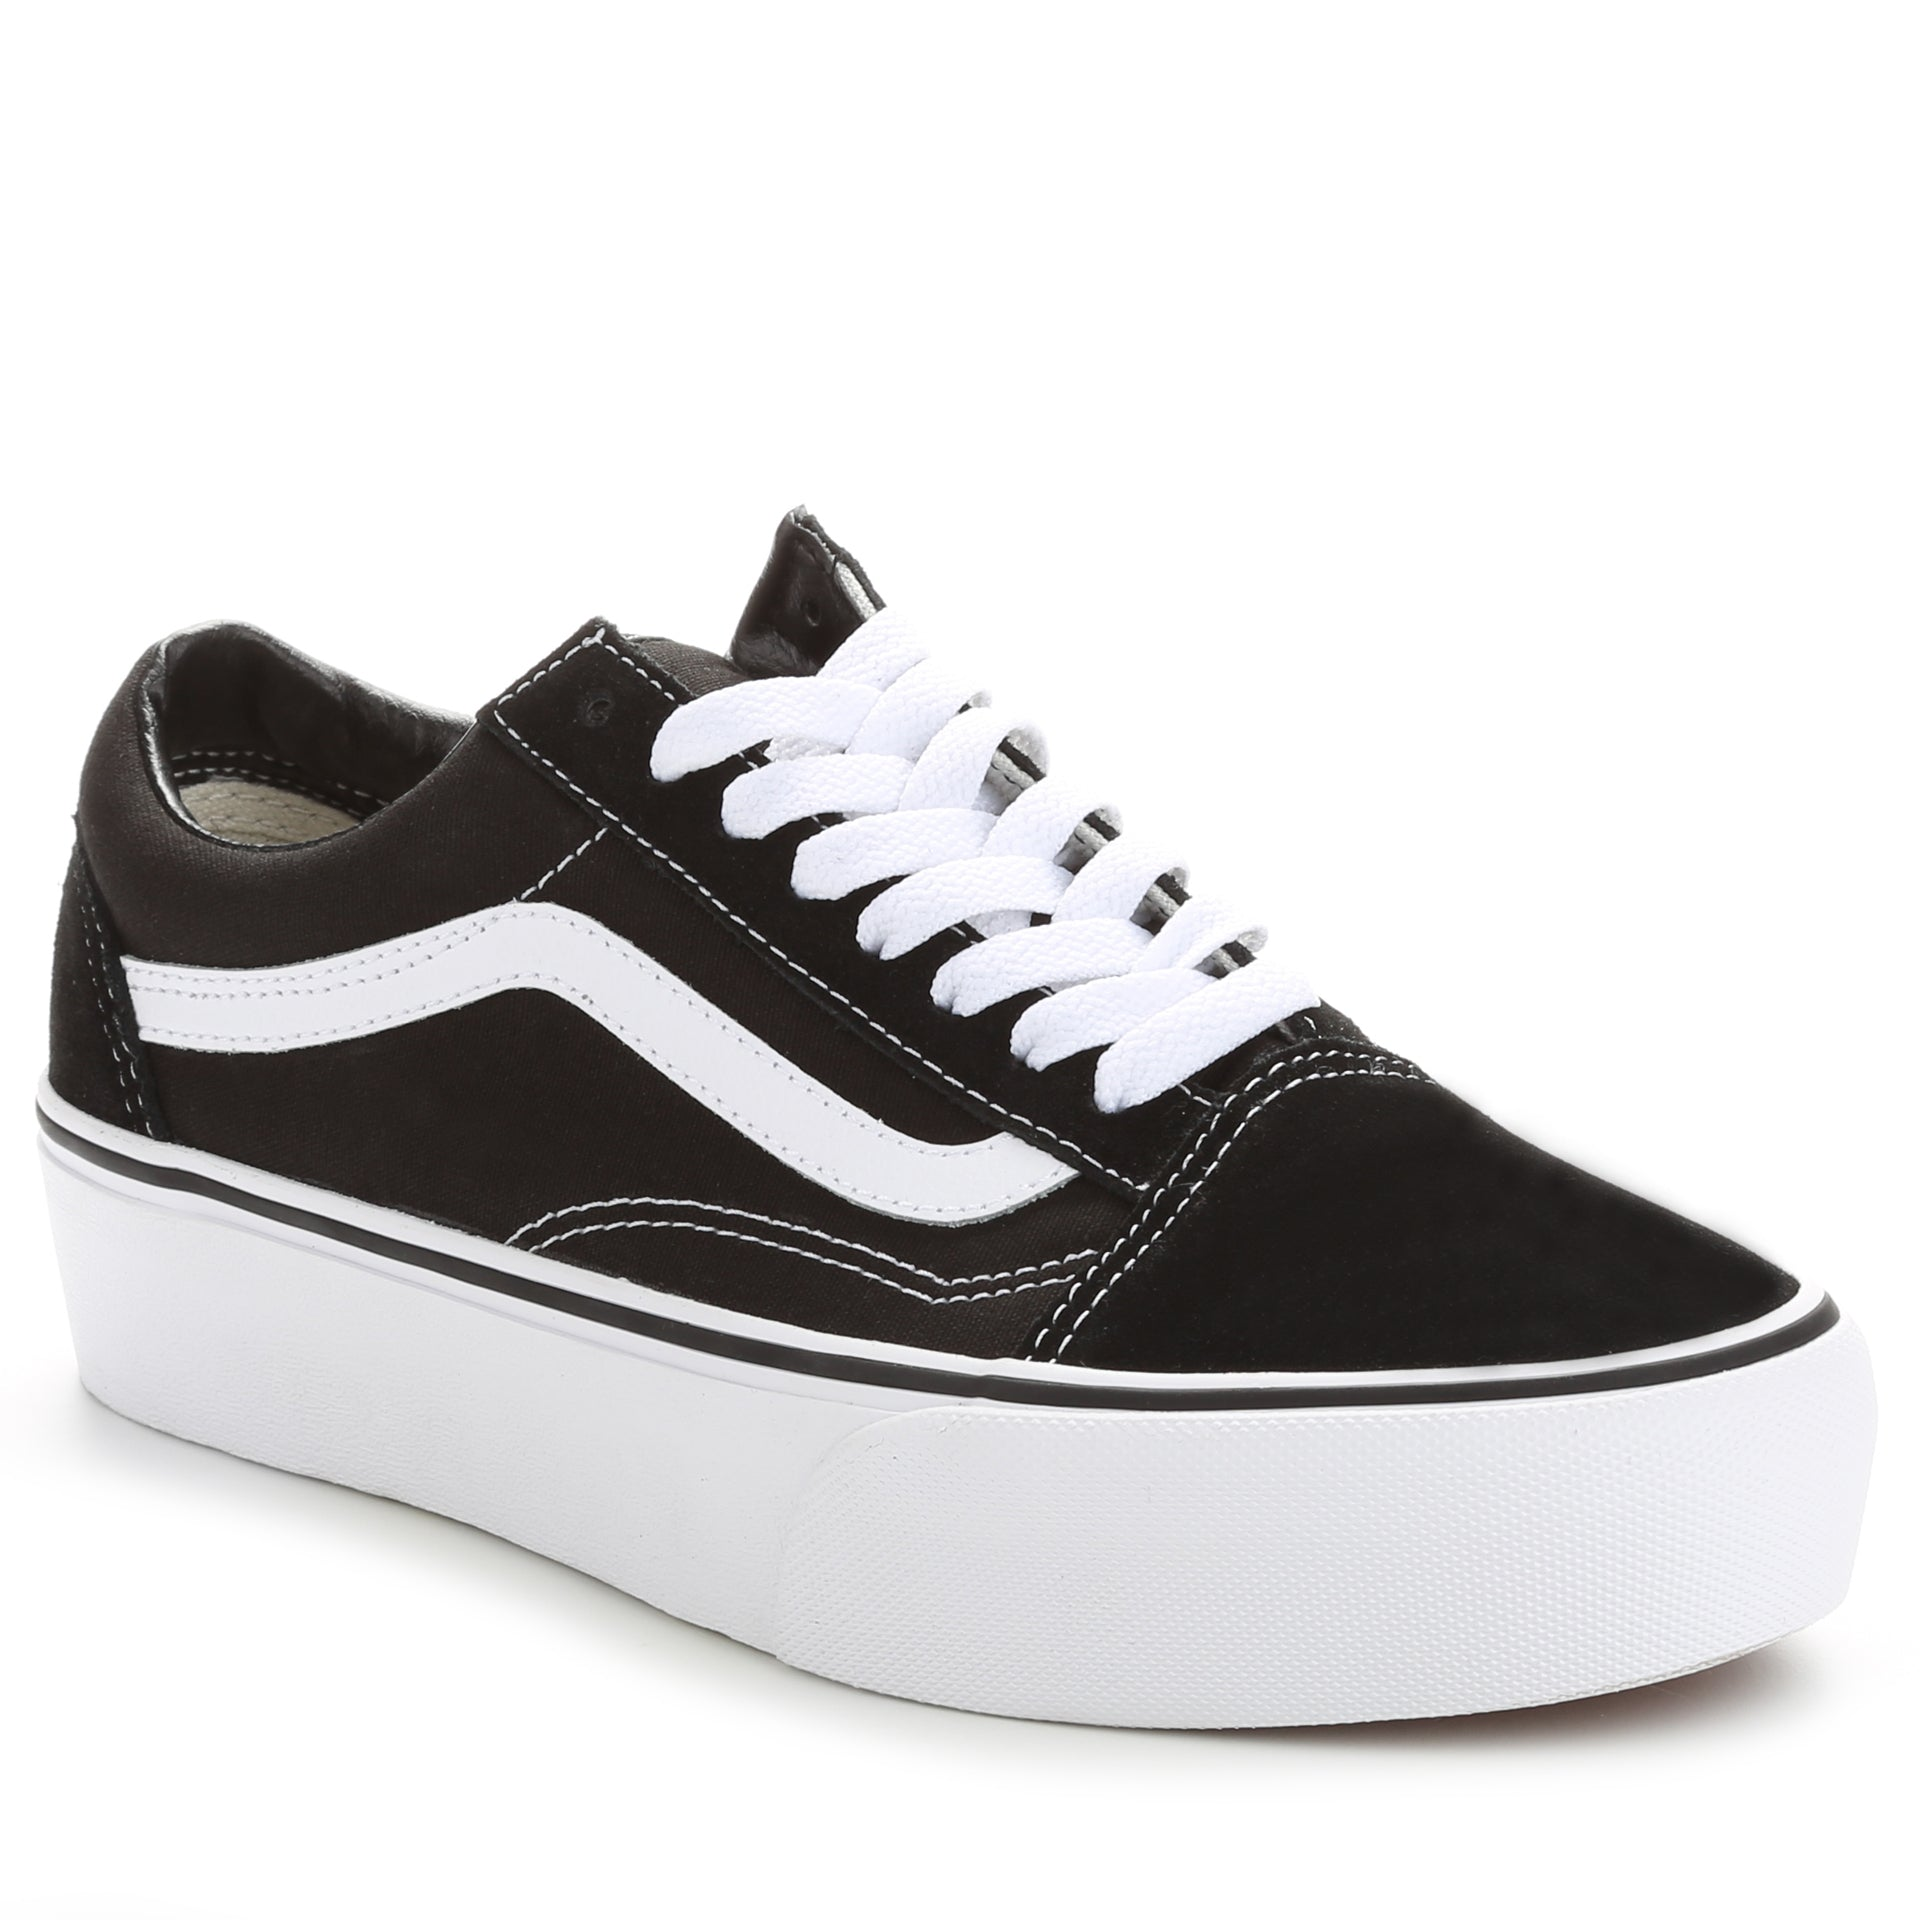 Vans Old Skool Platform Black White | Footshop